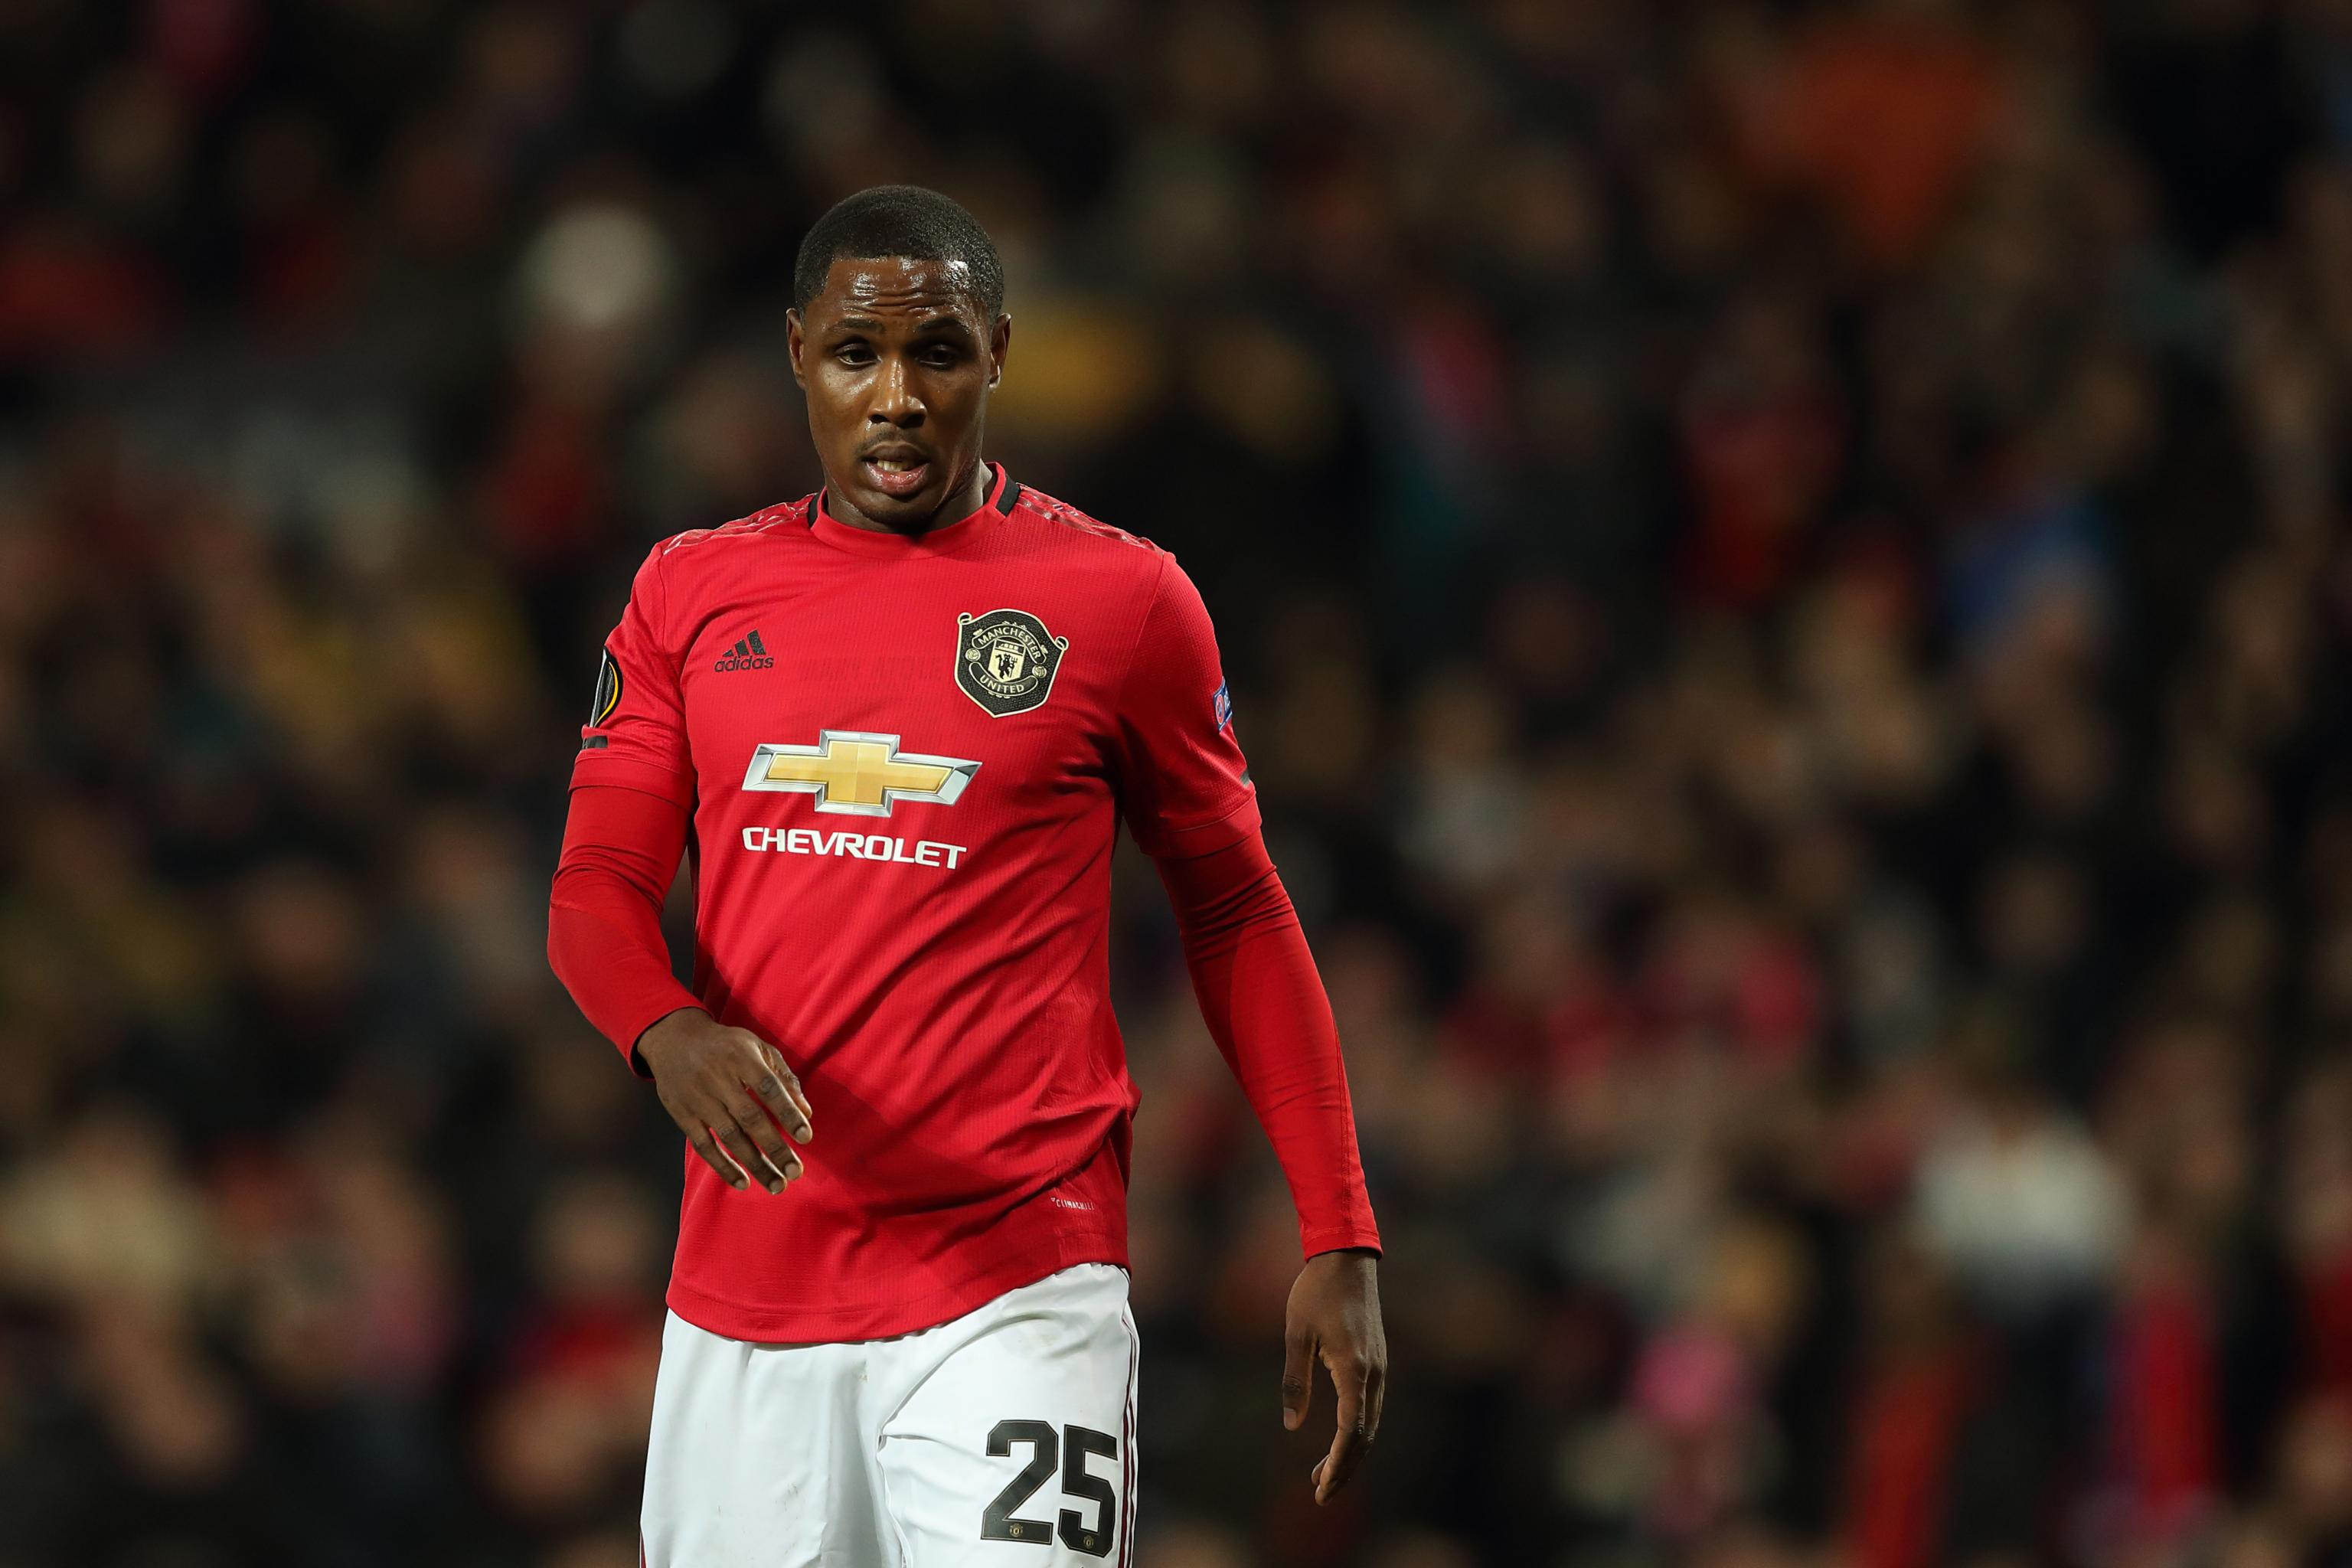 Man Utd: Odion Ighalo wants to extend loan and finish season - Bóng Đá